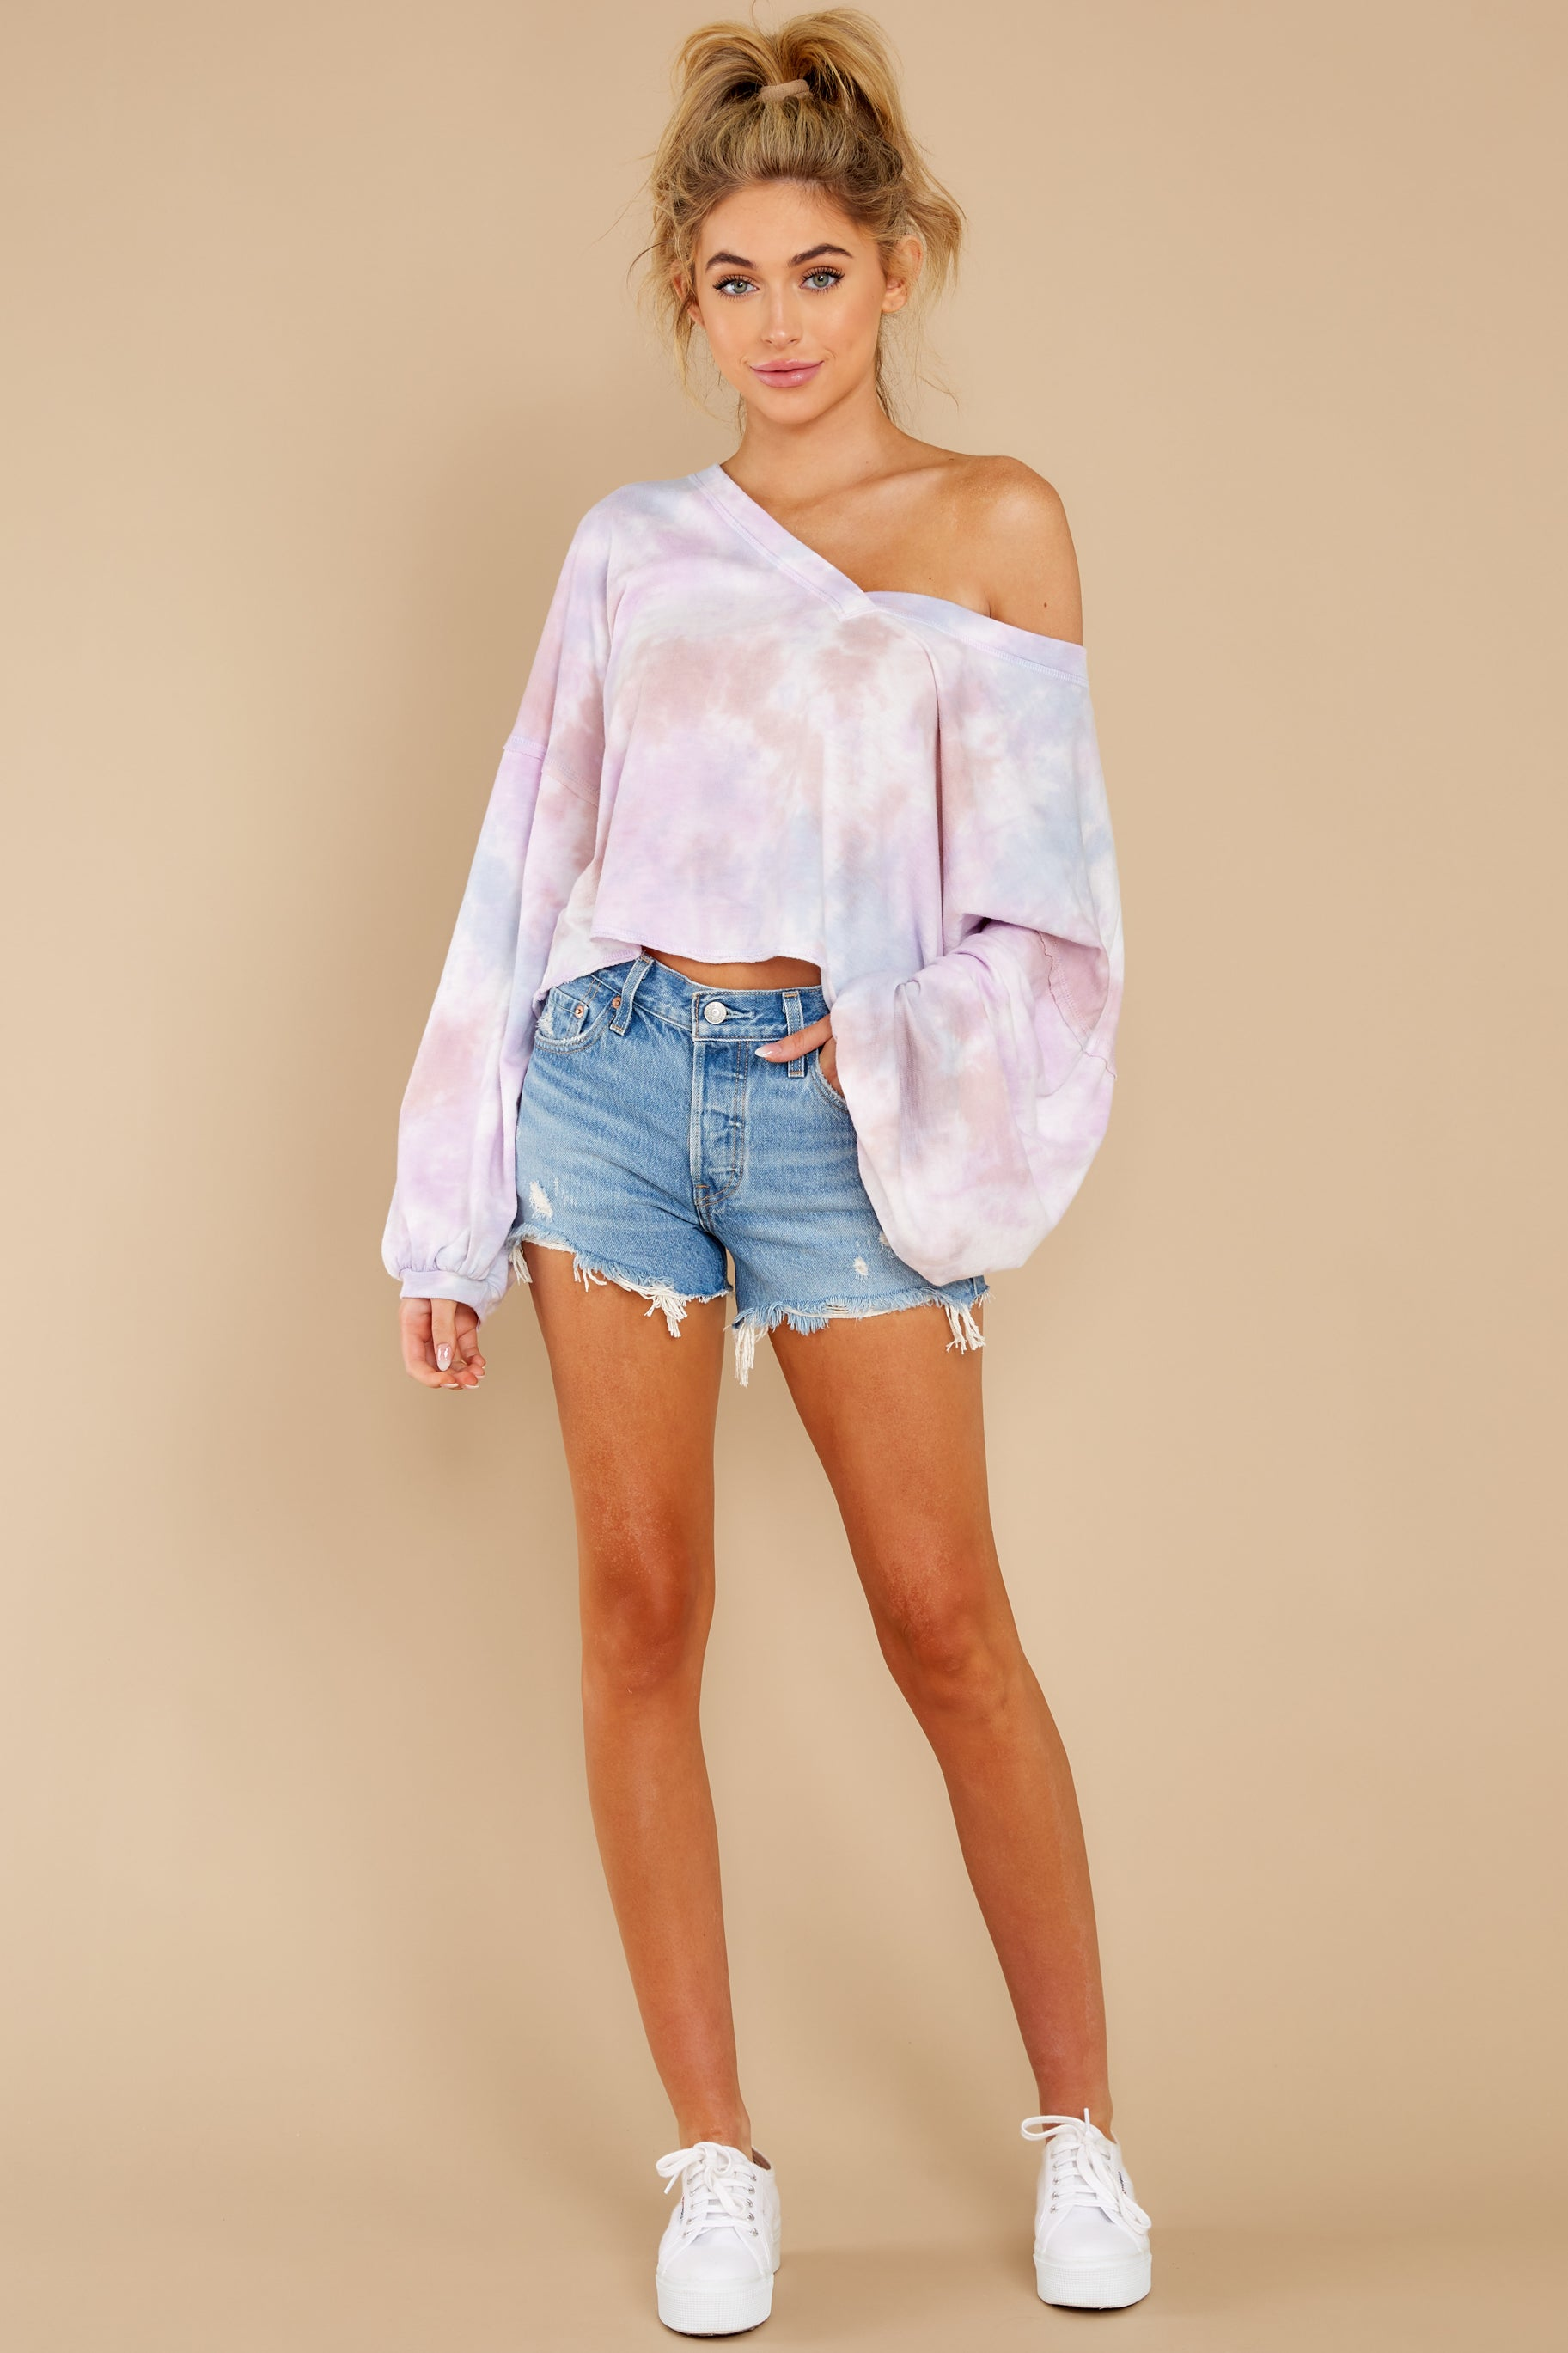 2 Feel Like Flying Lavender Multi Tie Dye Top at reddress.com